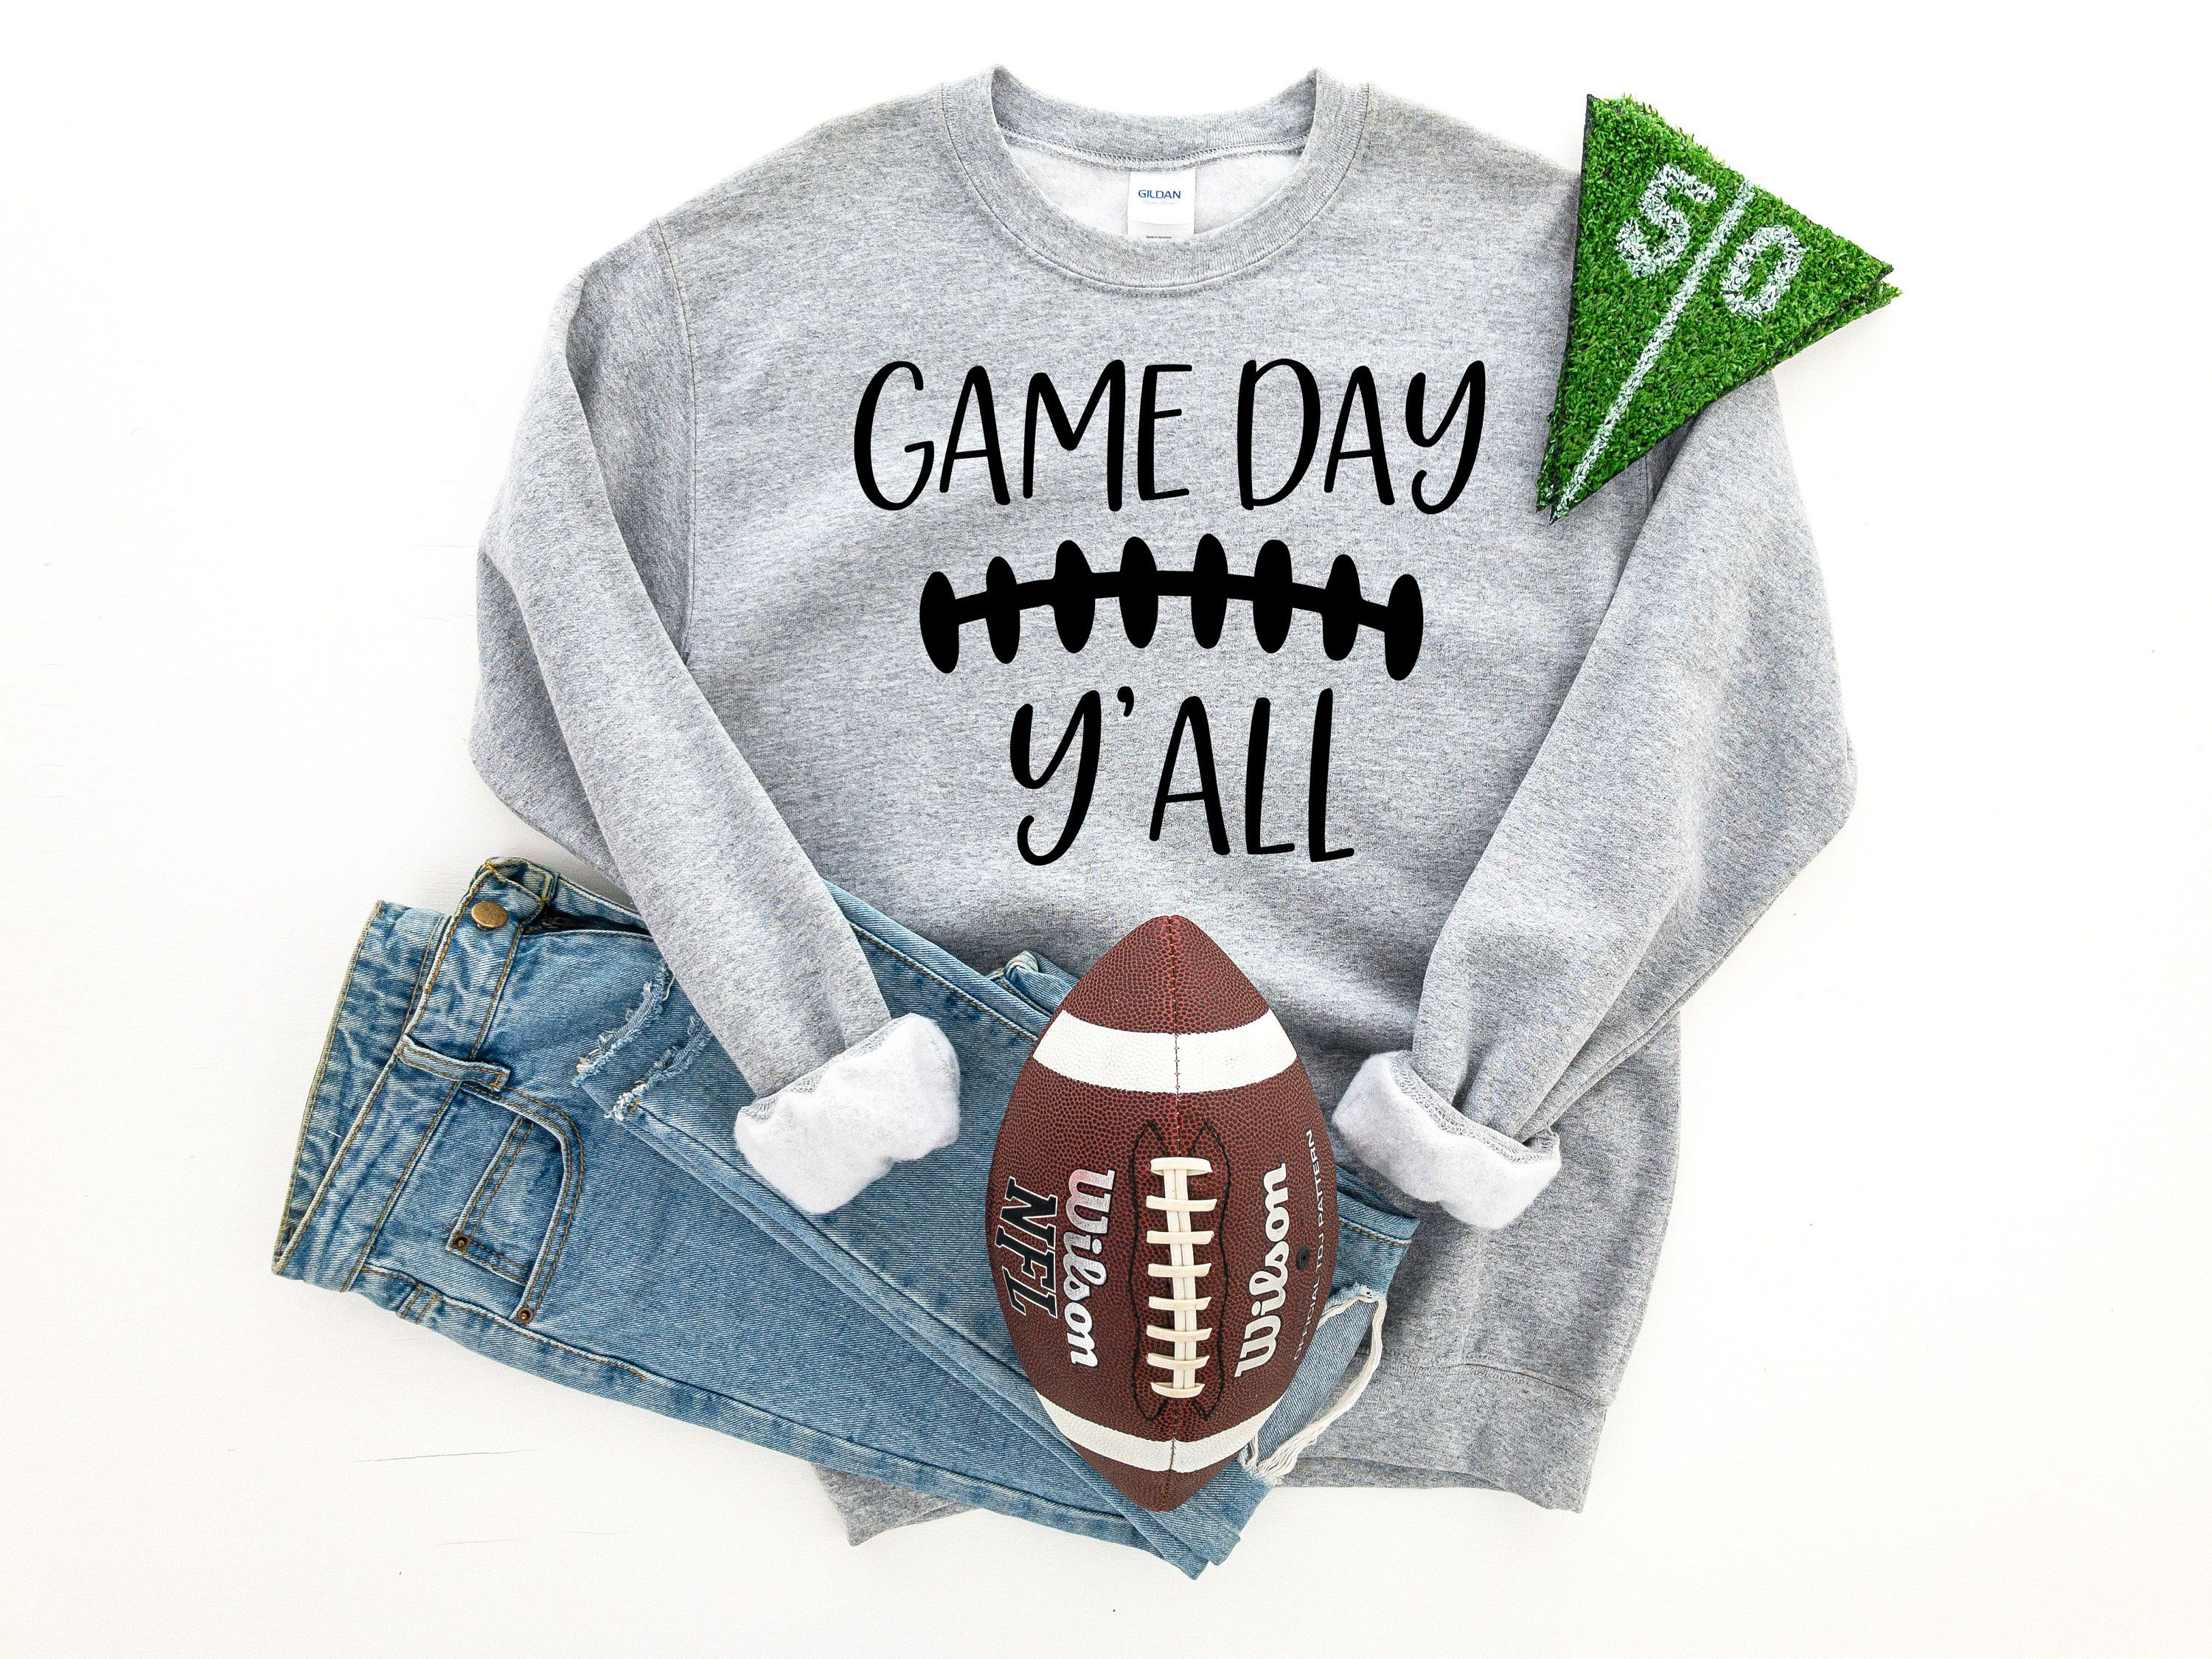 Game Day Y All Crewneck Sweatshirt By Autumnanddecember On Etsy Crew Neck Sweatshirt Sweatshirts Football Sweater [ 2250 x 3000 Pixel ]